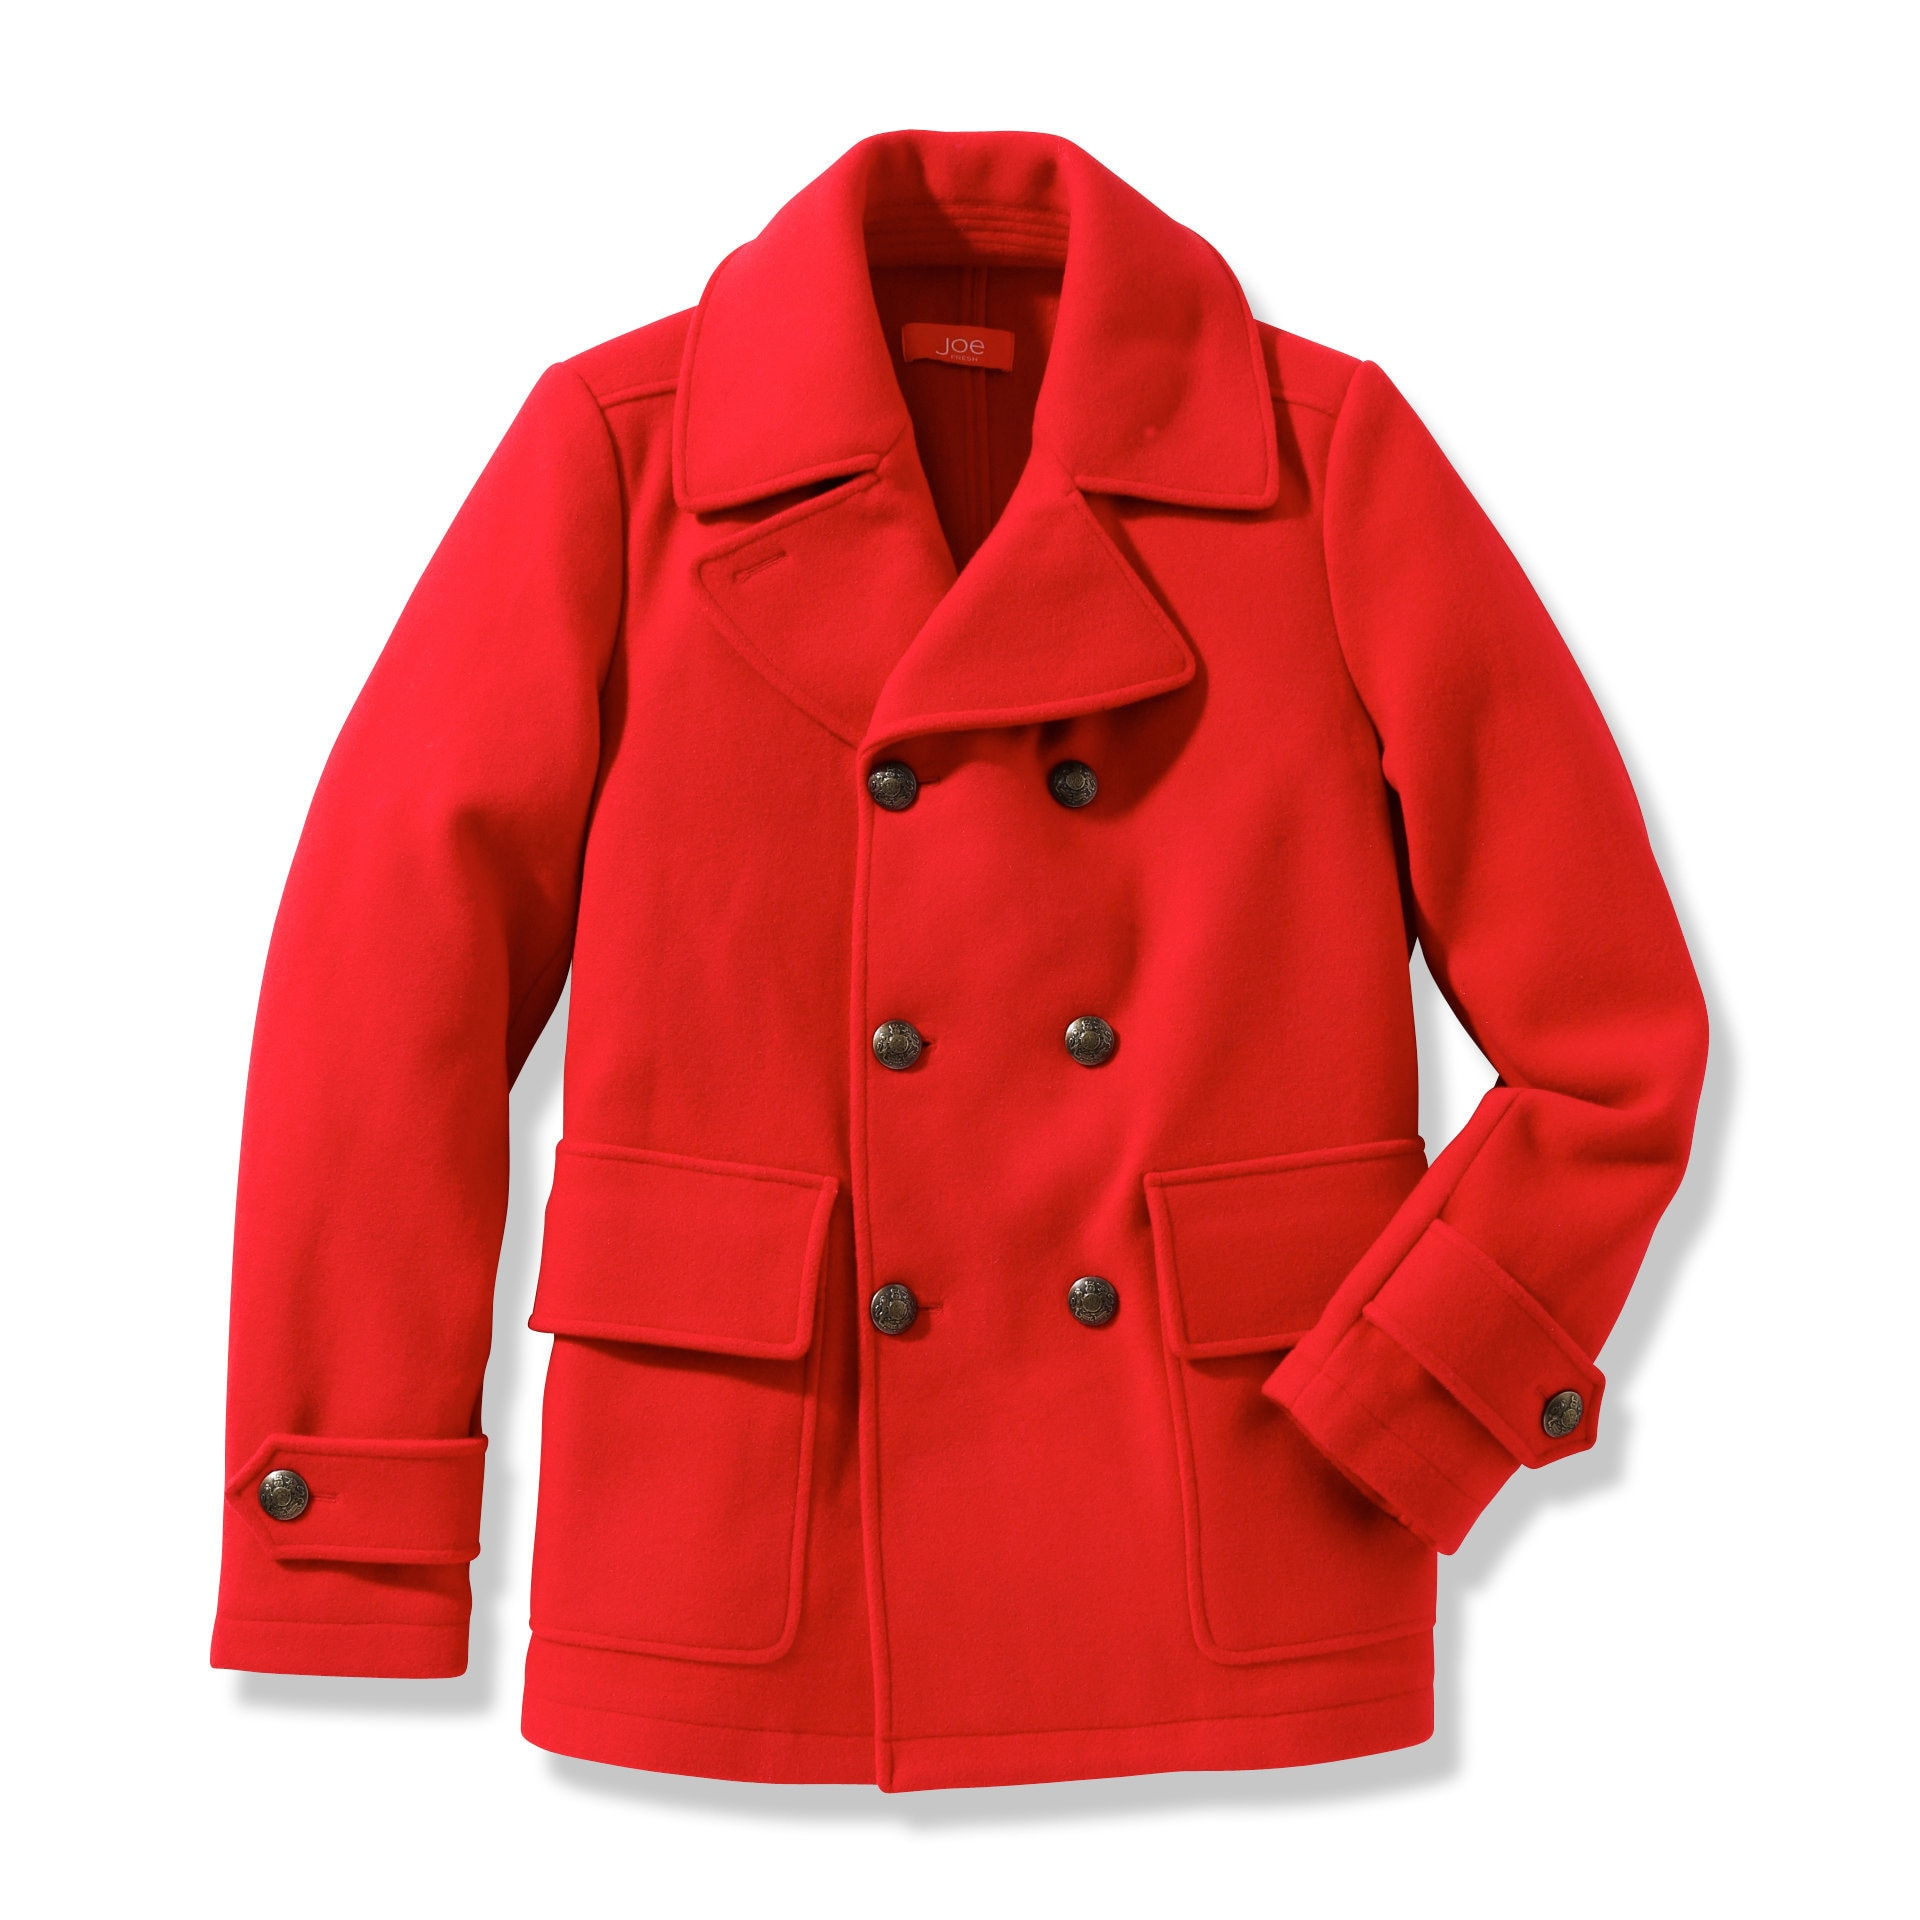 Red Mens Pea Coat - Tradingbasis